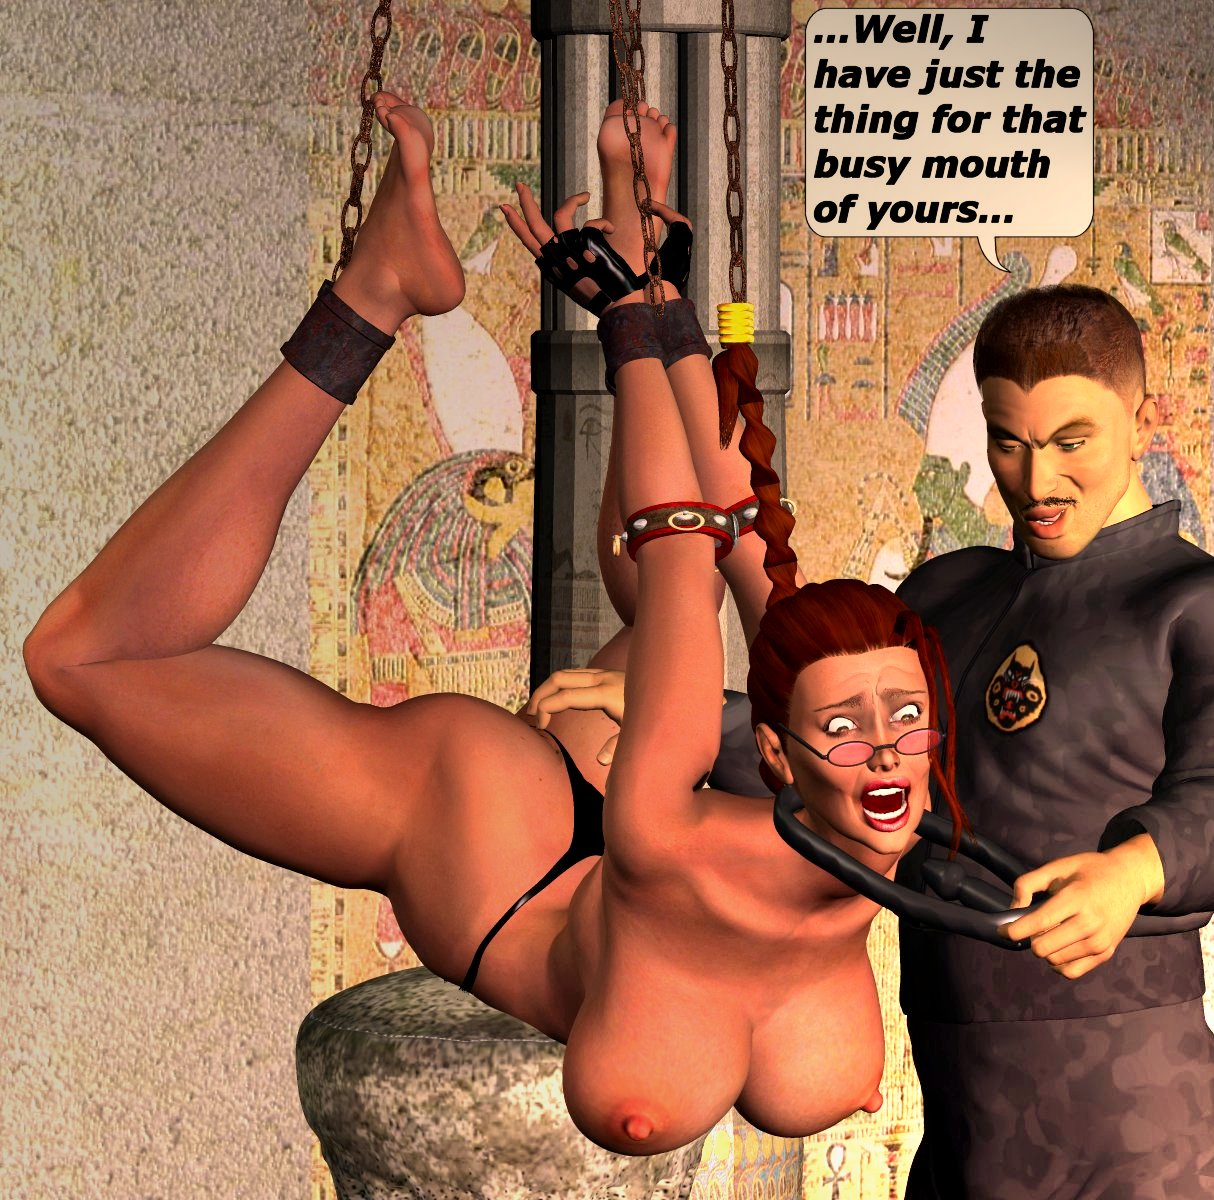 Lara croft uncensored pictures nude comics